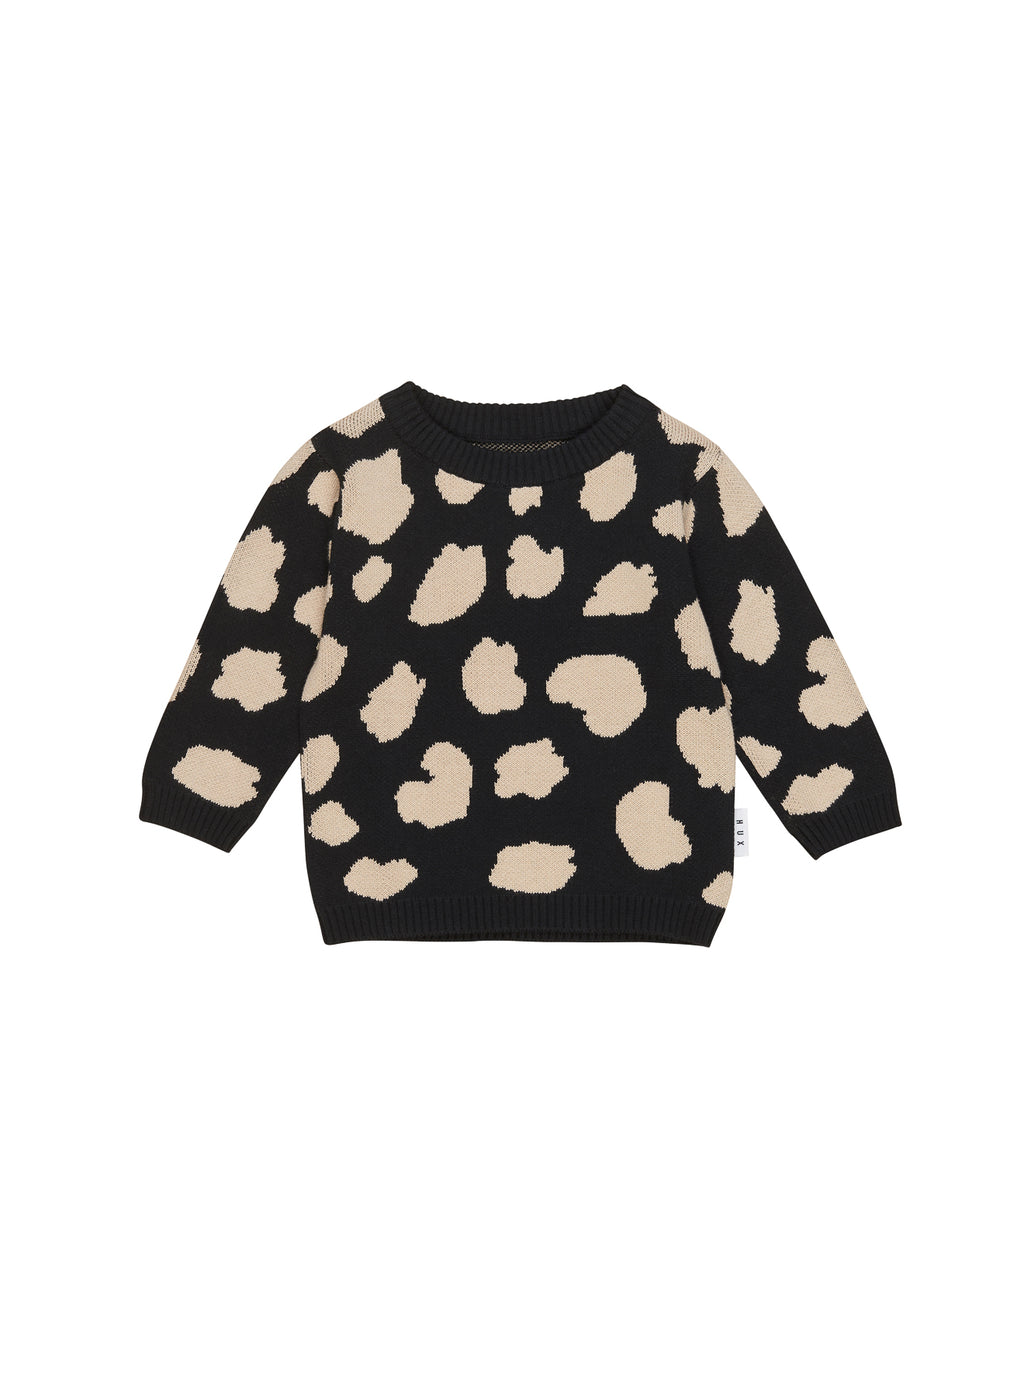 Huxbaby_Animal Spot Knit Jumper - The Child Hood